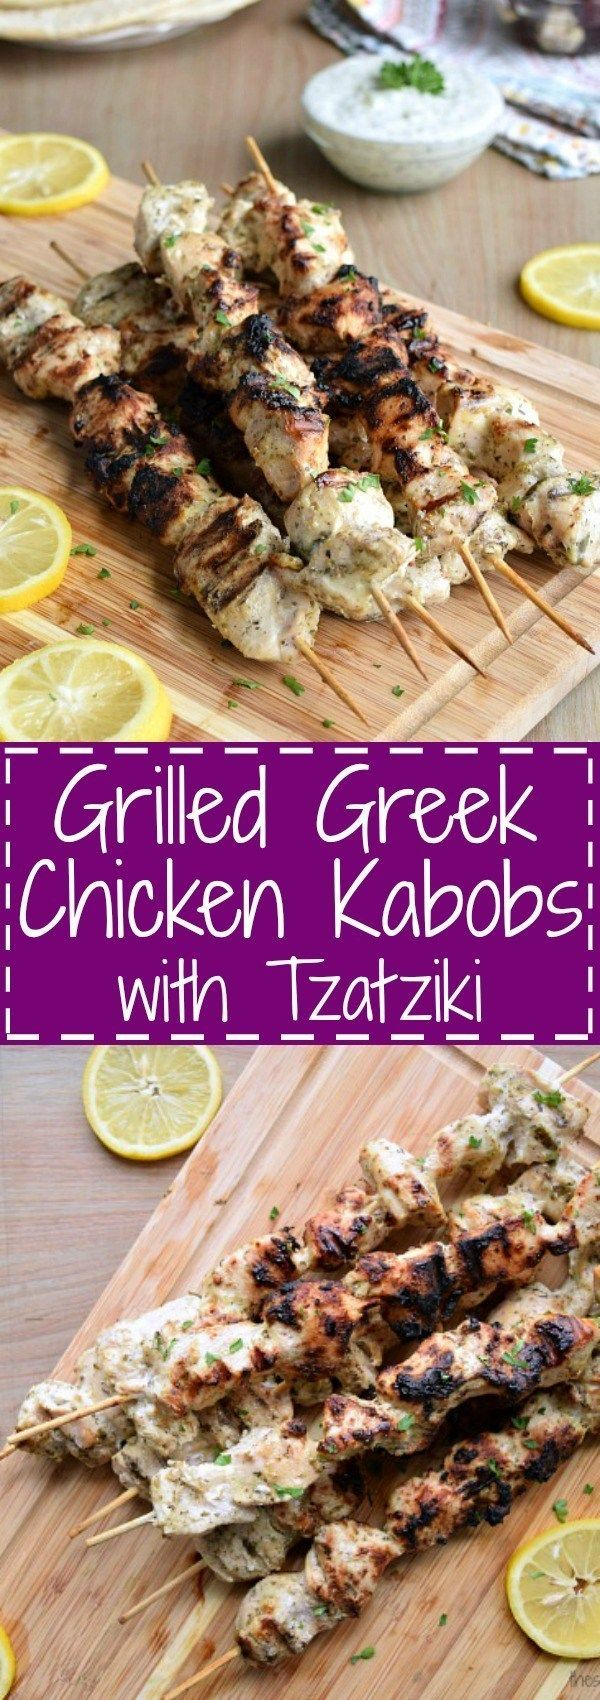 Grilled Greek Chicken Kabobs with Tzatziki | The Schmidty Wife